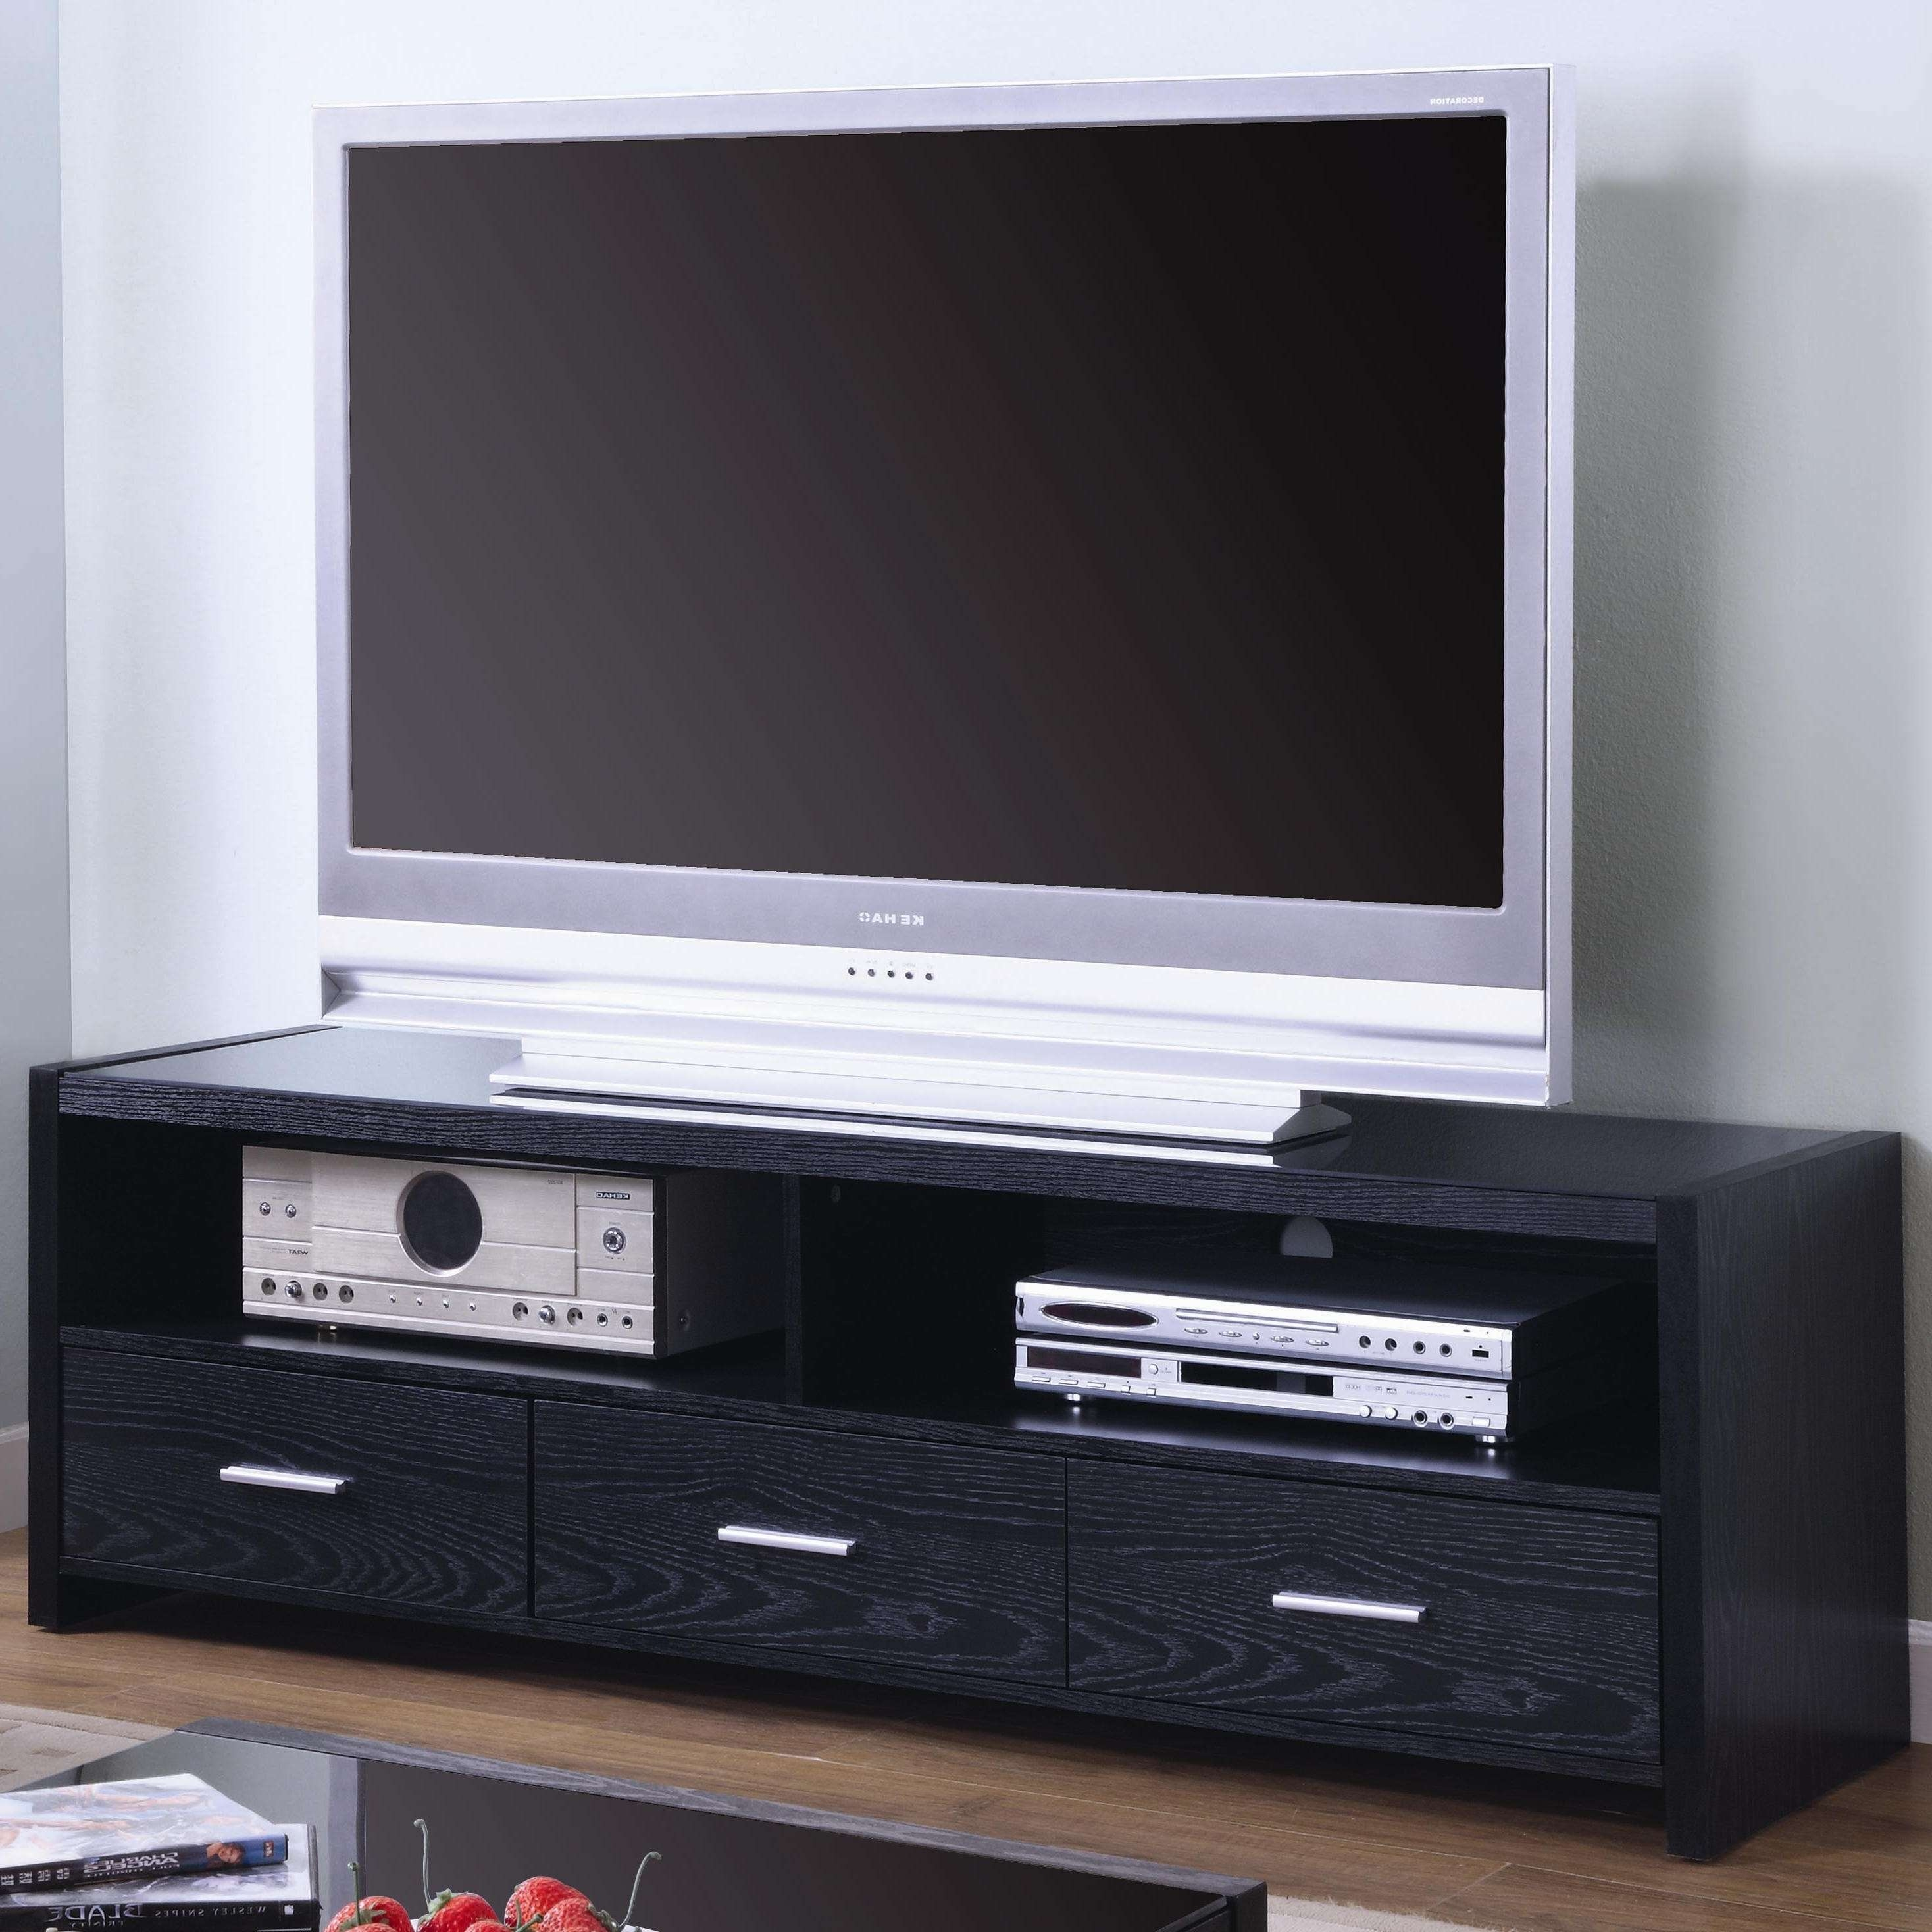 Media Storage Drawers Tv Stands Contemporary Console With Shelves In Low Profile Contemporary Tv Stands (View 11 of 20)